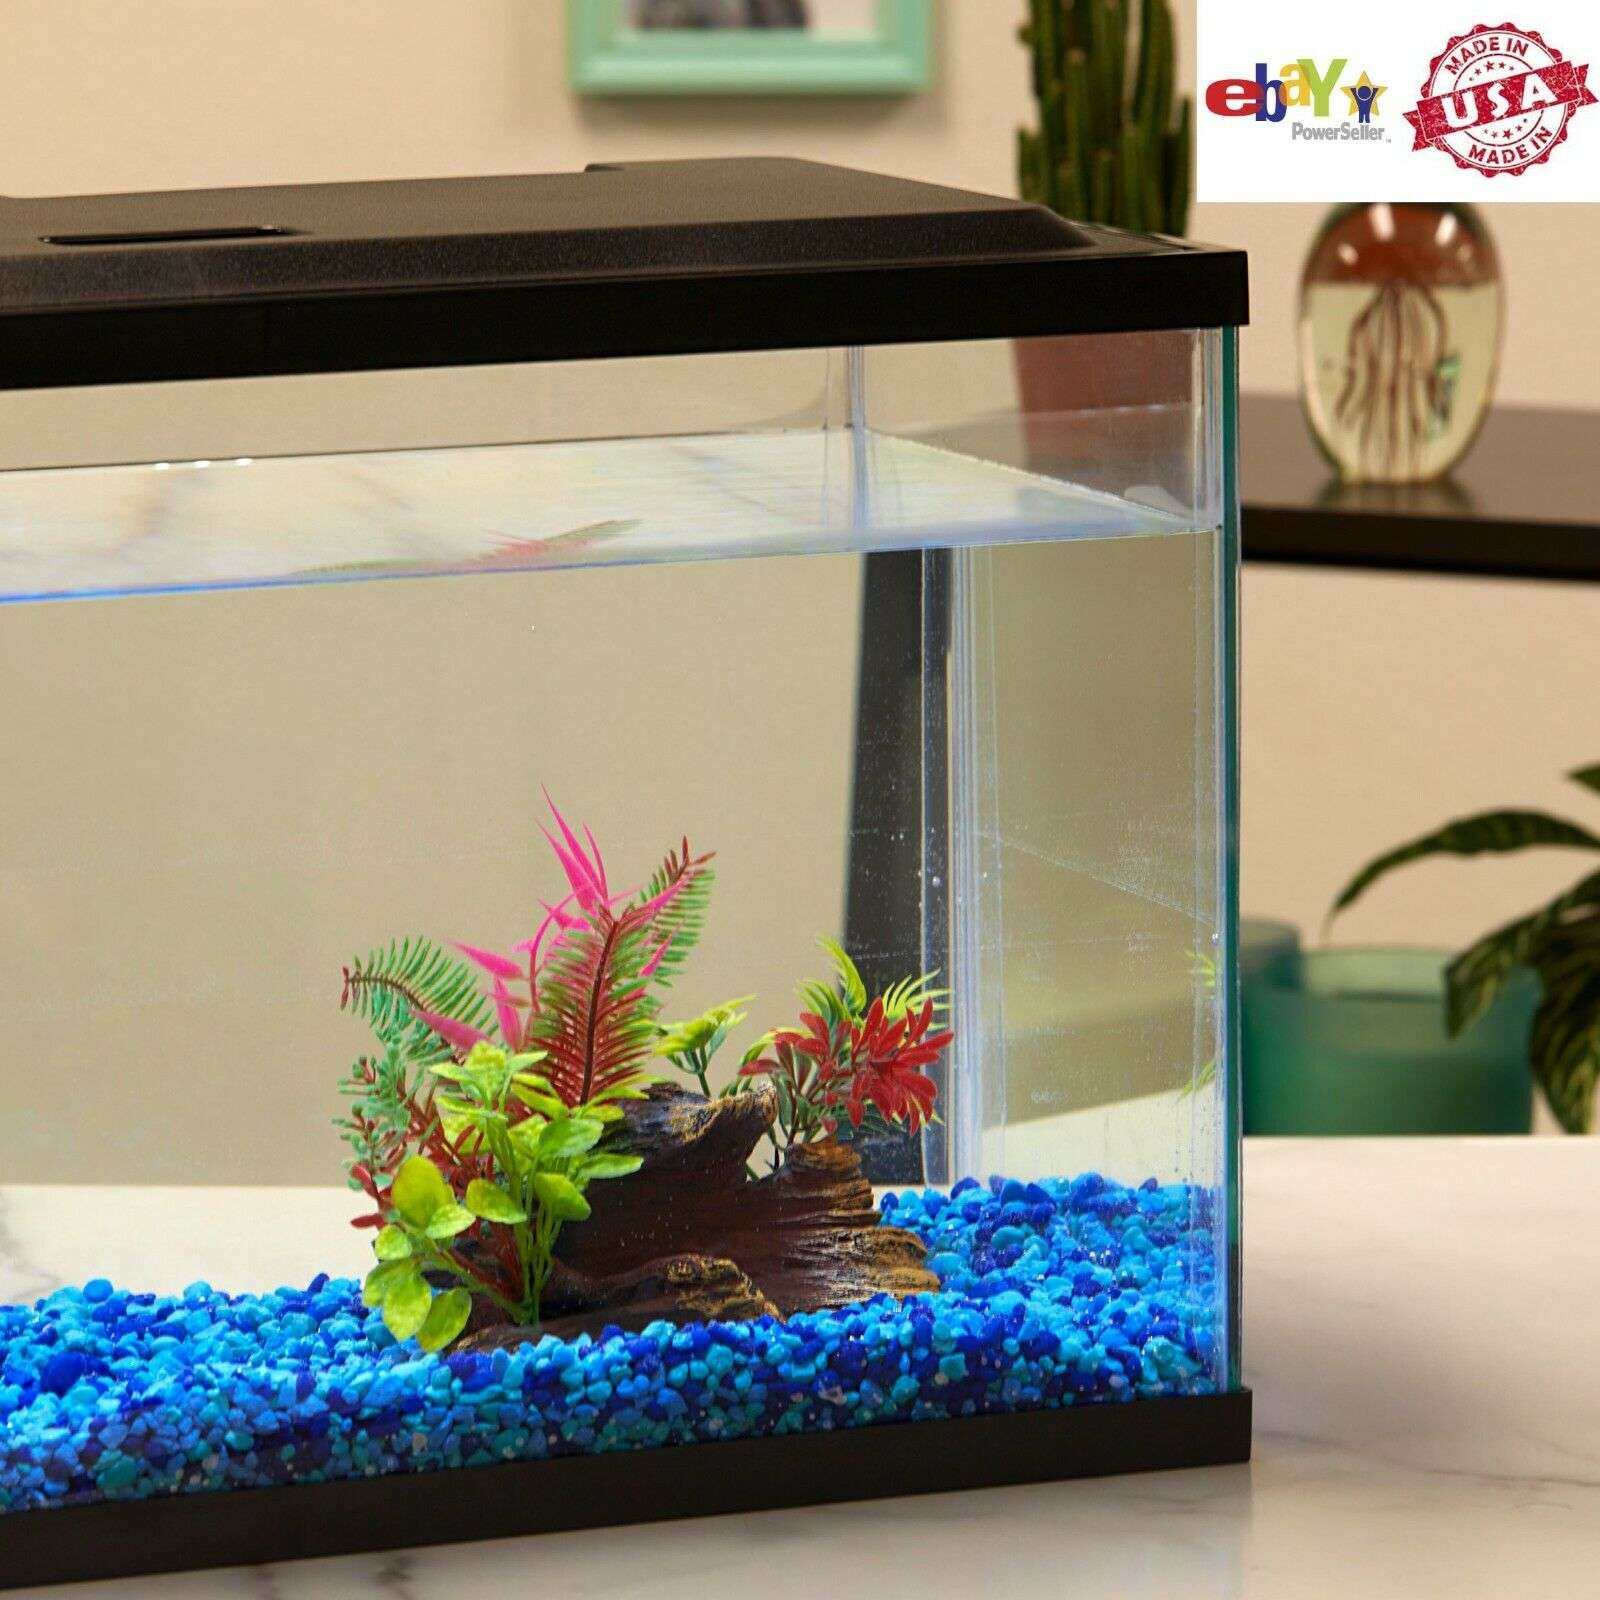 10 Gallon Aquarium Hood Fish Tank Top Lid With LED Light NEW US, FAST DELIVERY